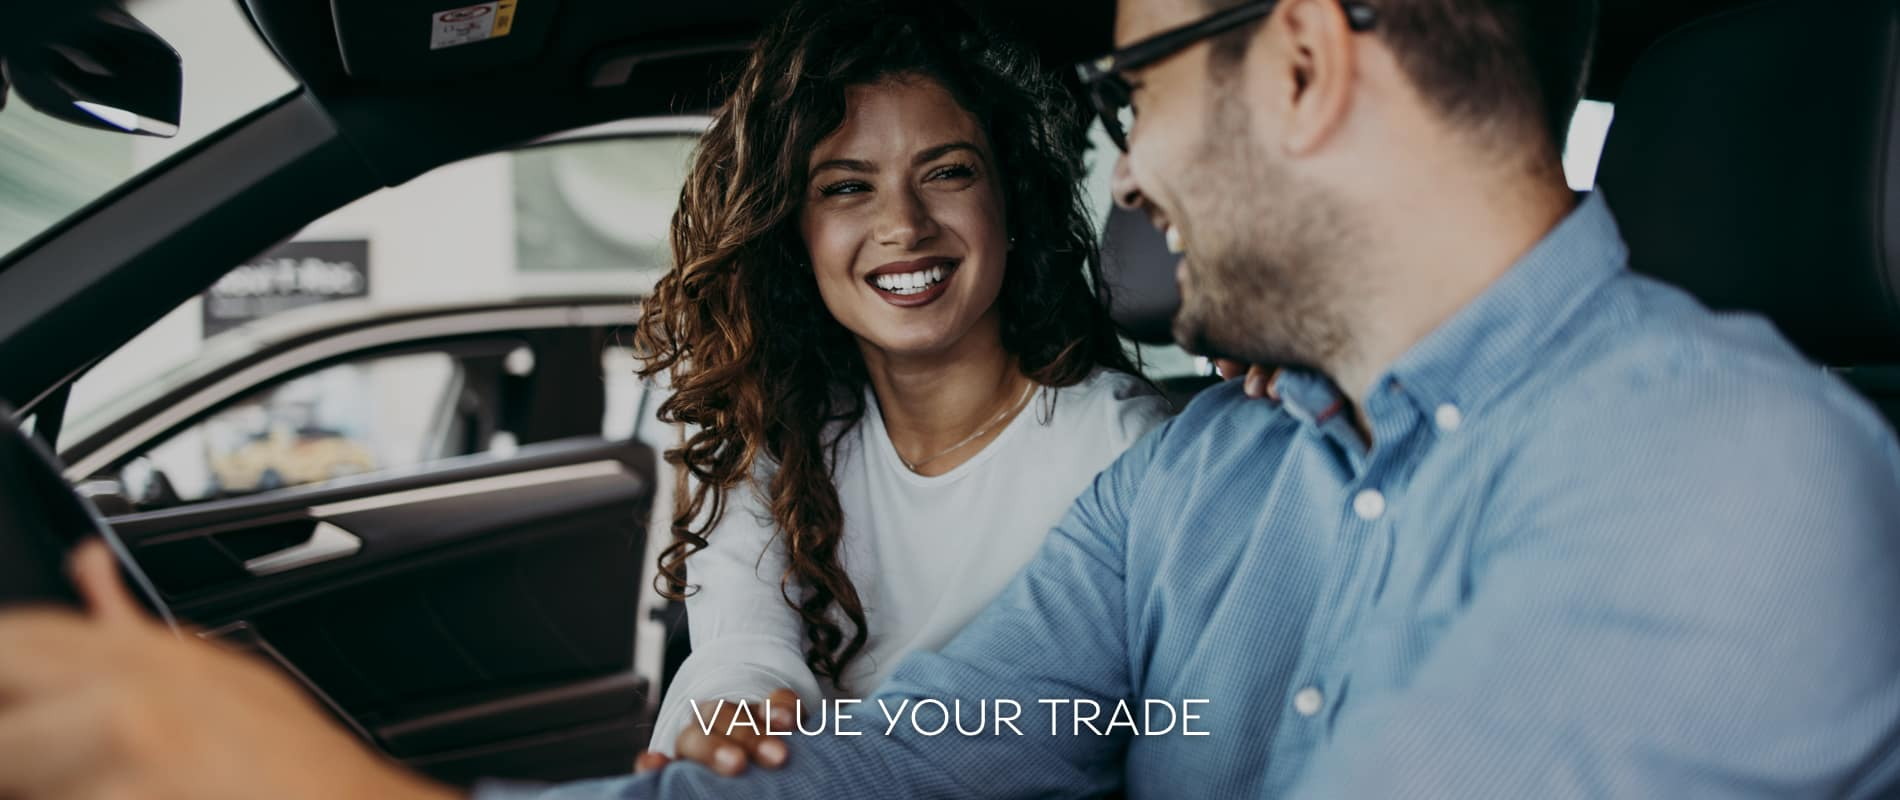 Value Your Trade - Roadster